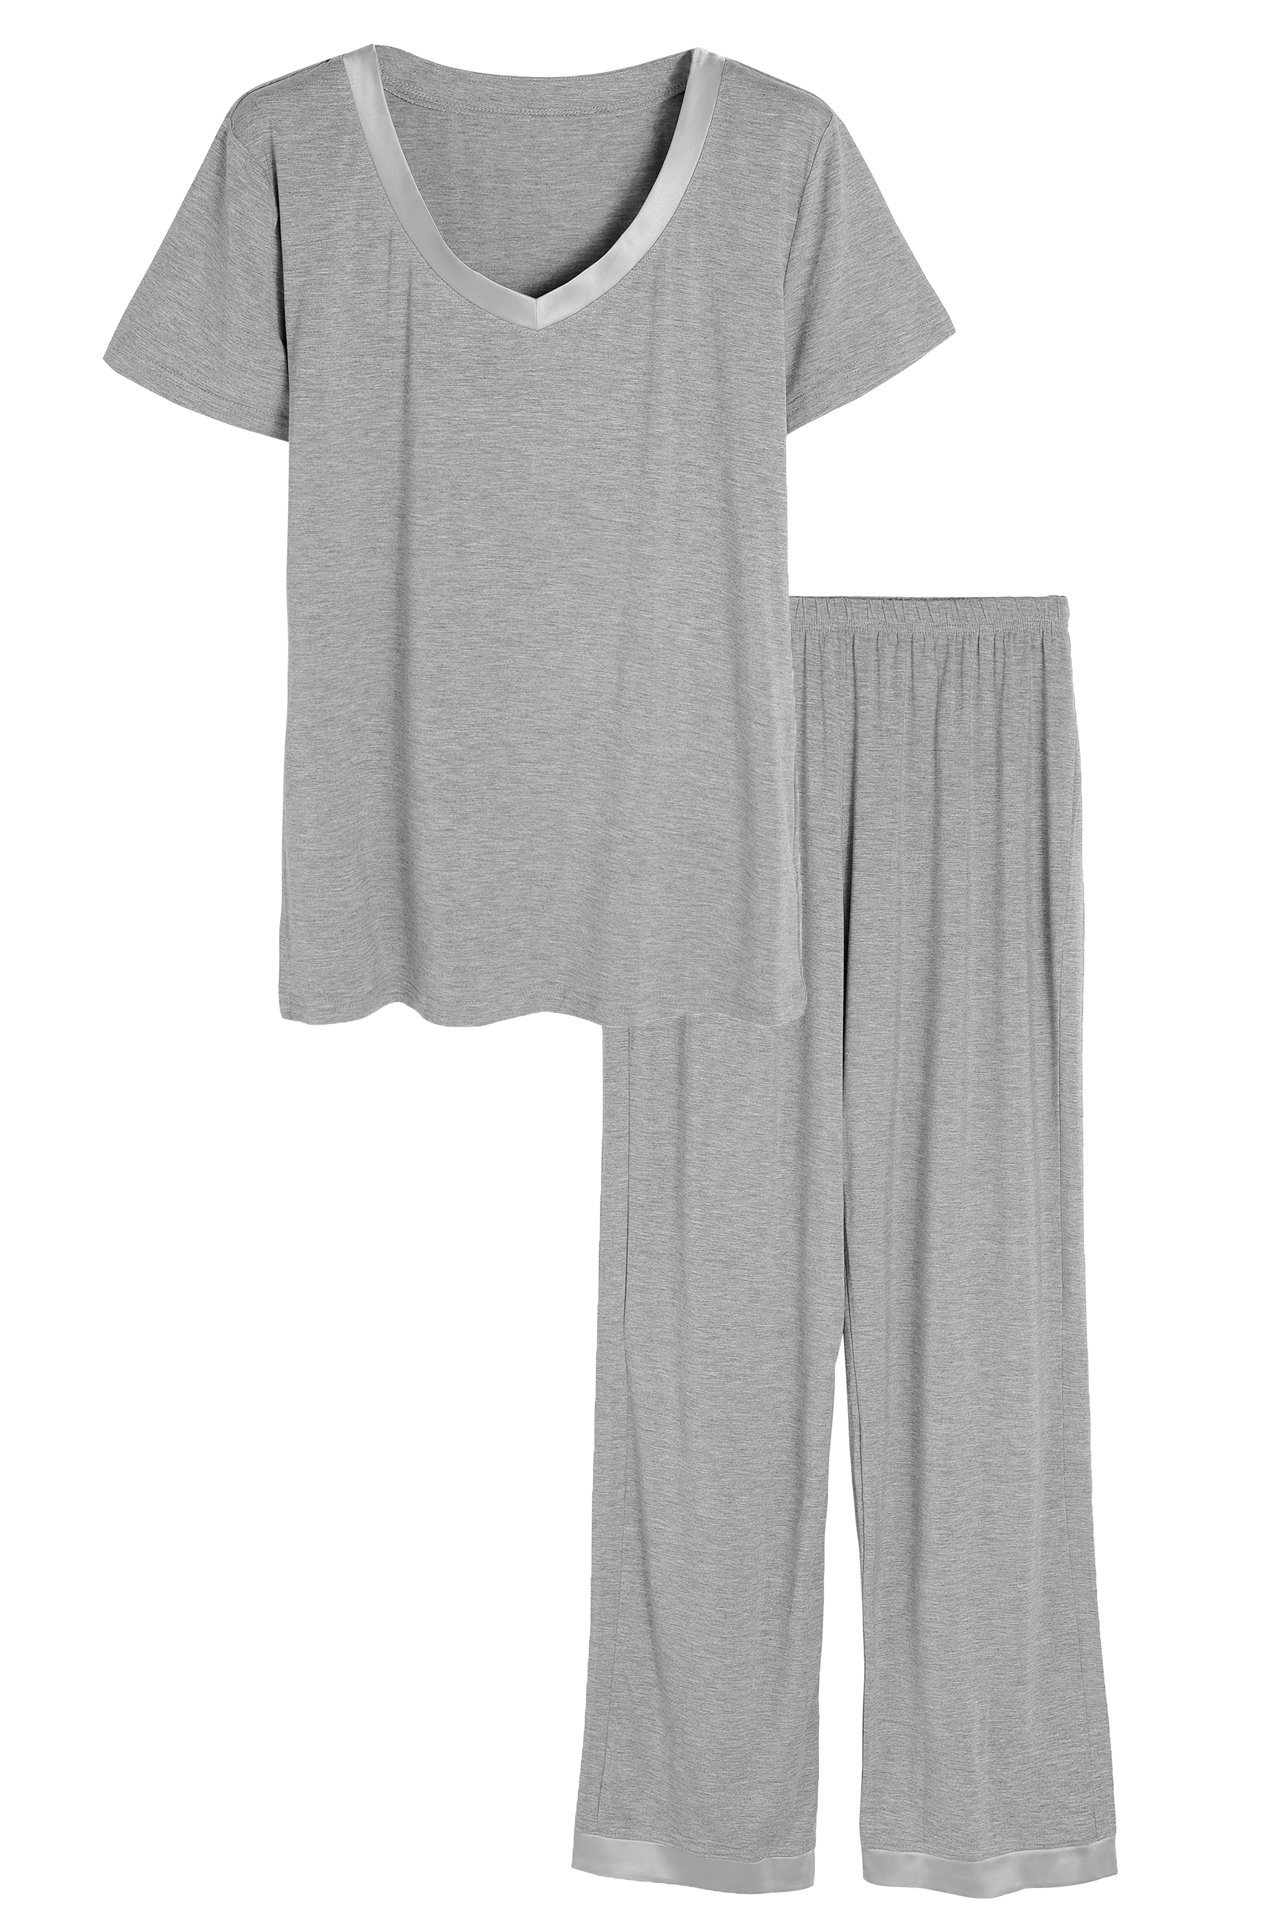 Best Rated in Women's Pajama Sets & Helpful Customer